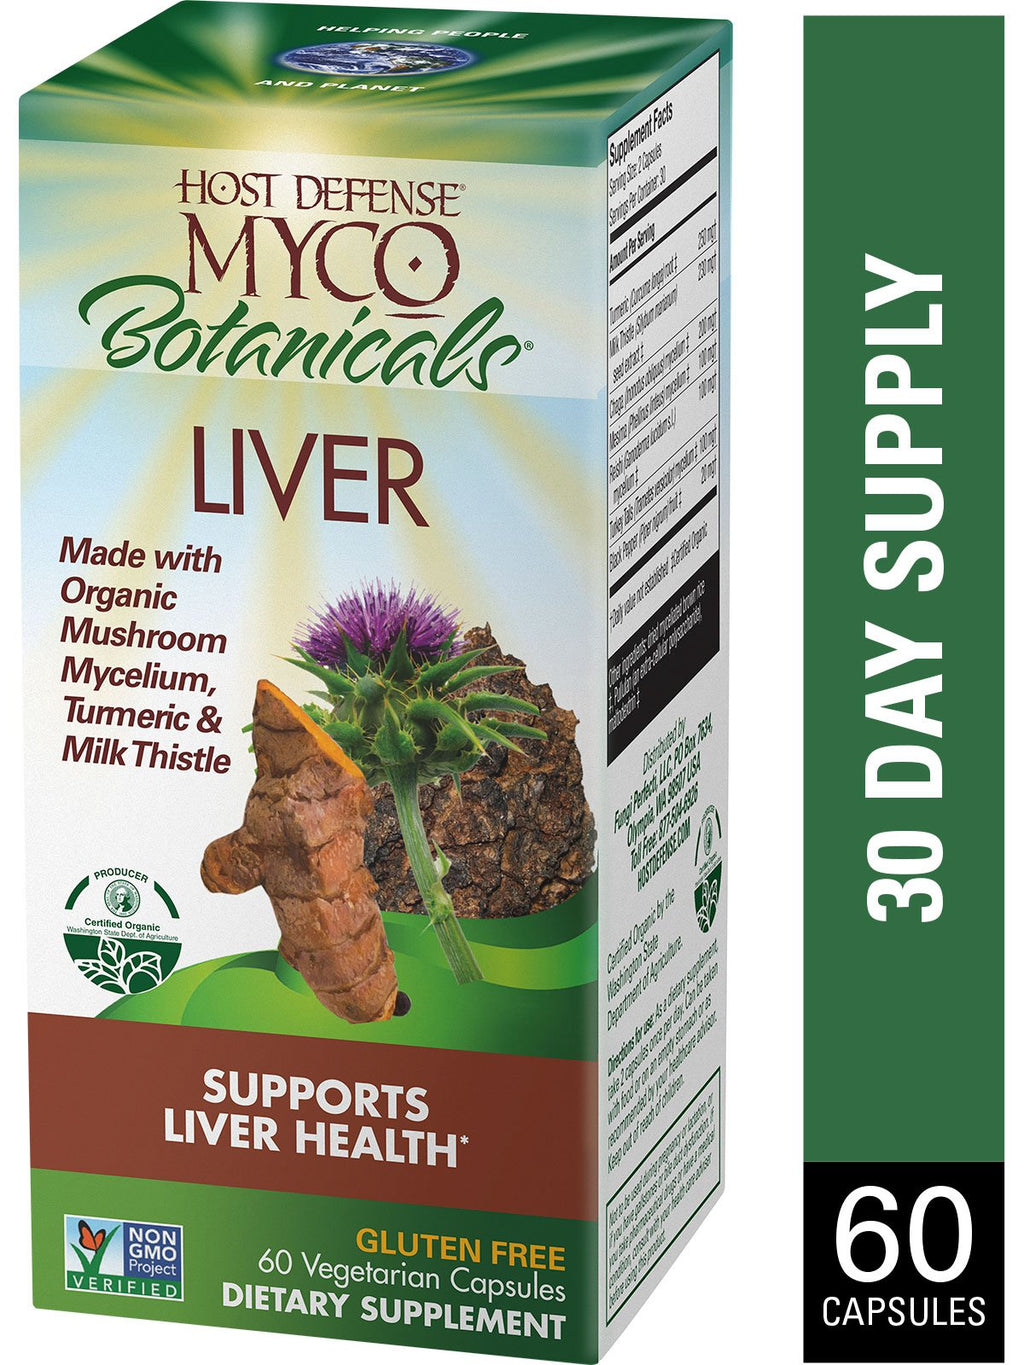 Myco Botanicals Liver Caps 60 ct - Safe for kids and all natural